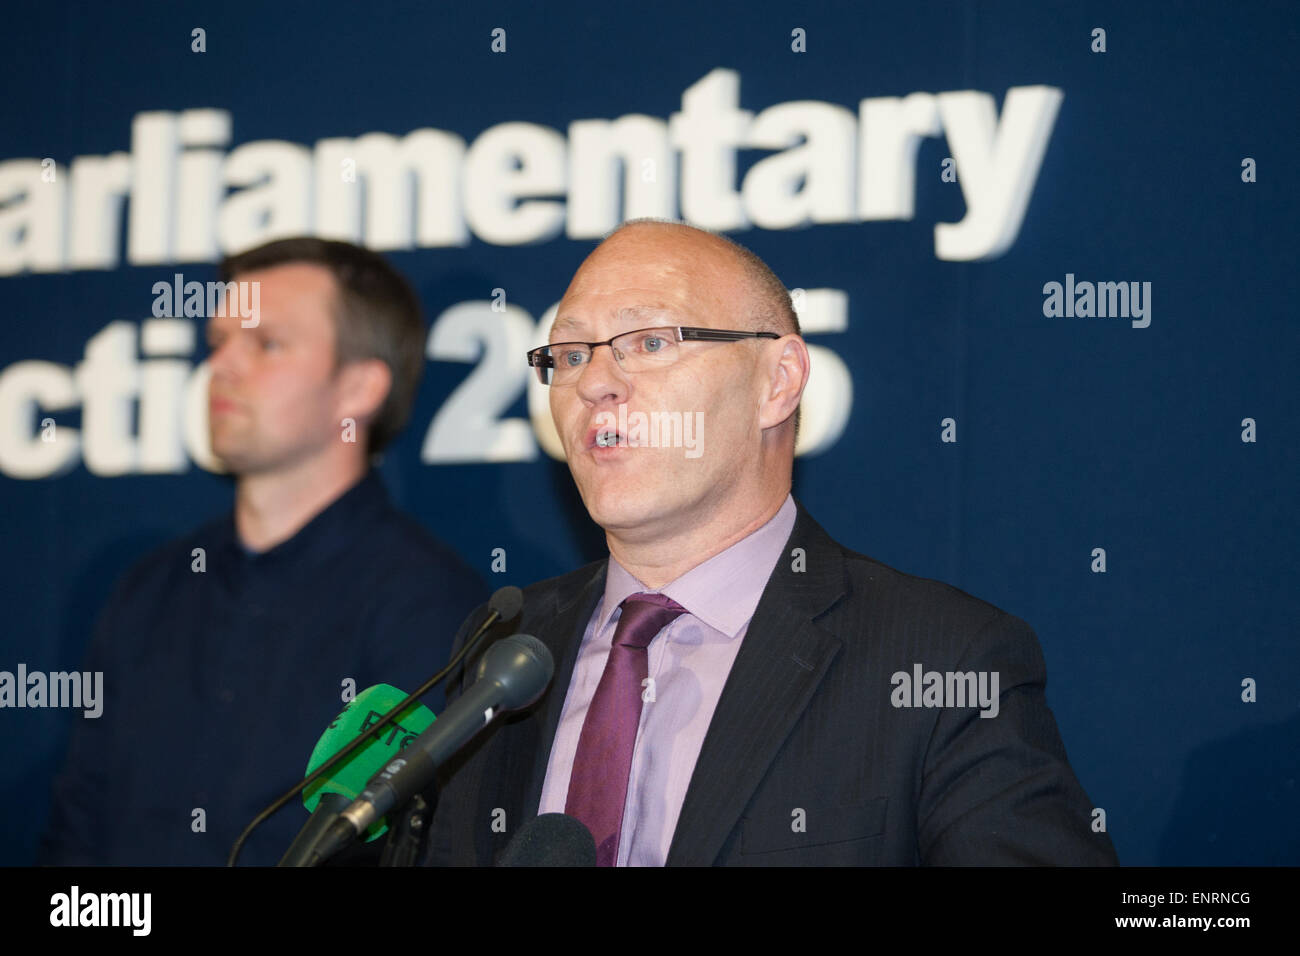 Belfast UK. 7th May 2015 General Election: Paul Maskey give his acceptance speech after winning the seat of Belfast - Stock Image